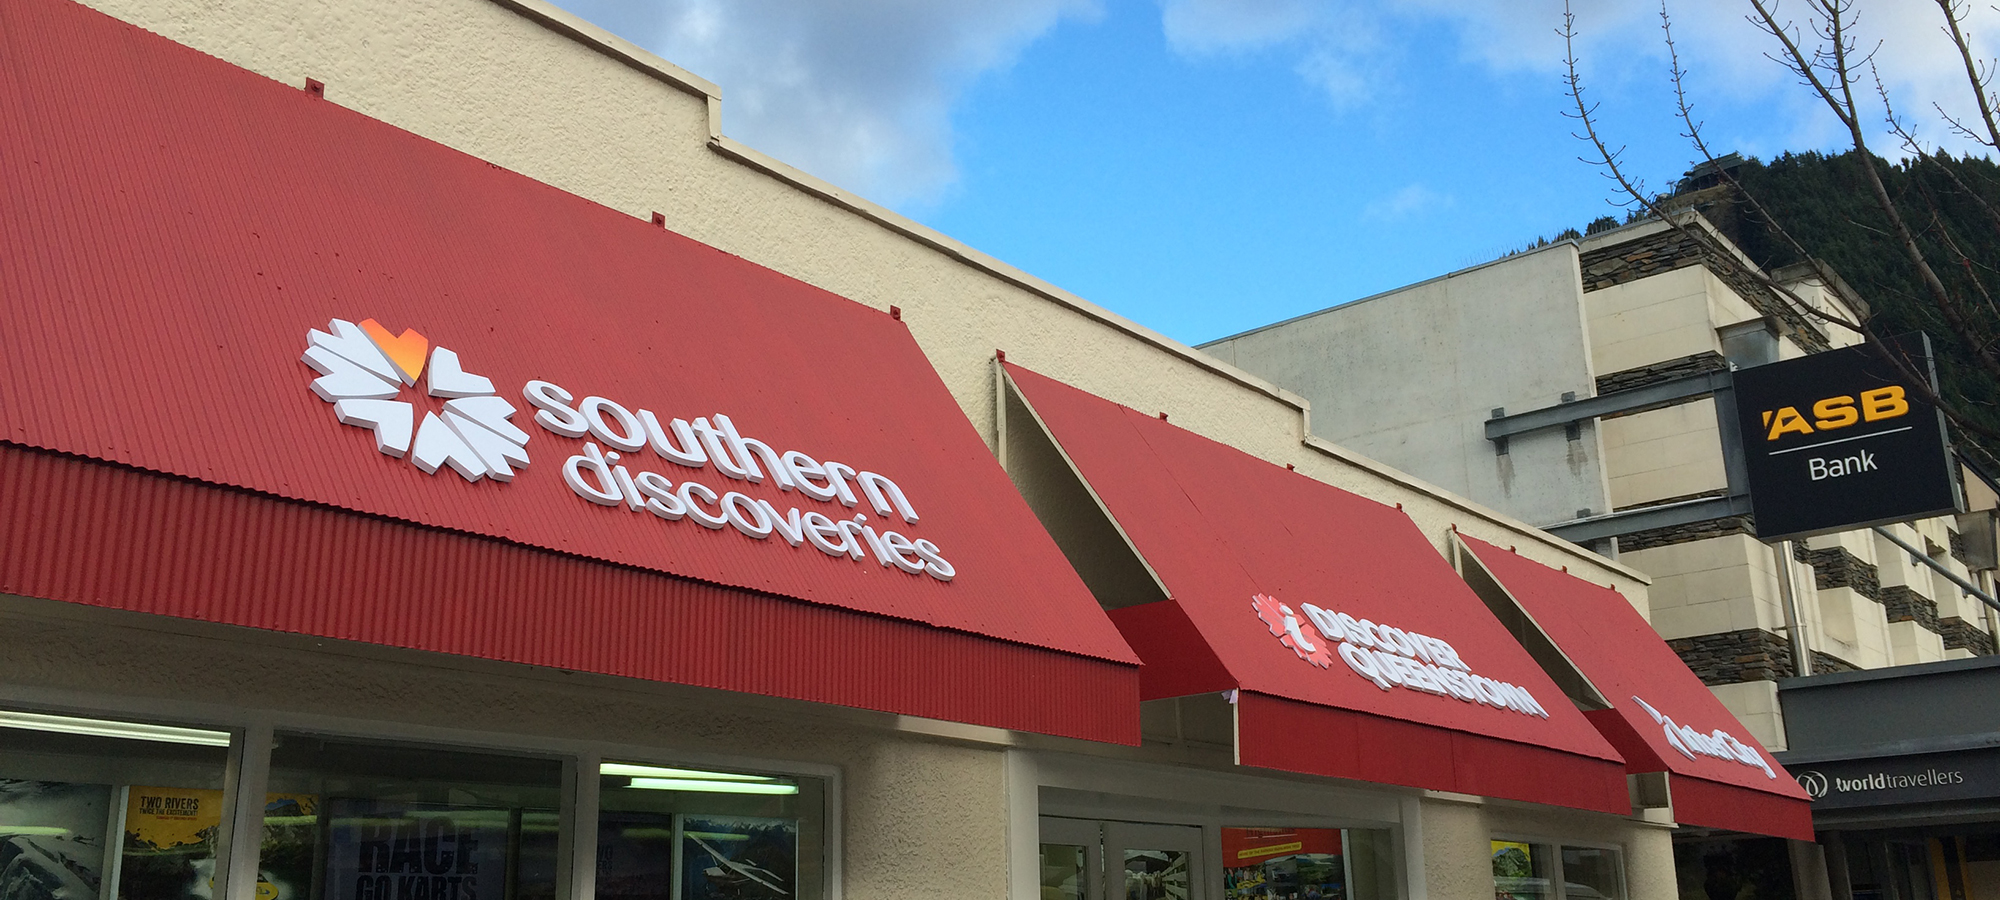 Southern Discoveries Awnings 3D